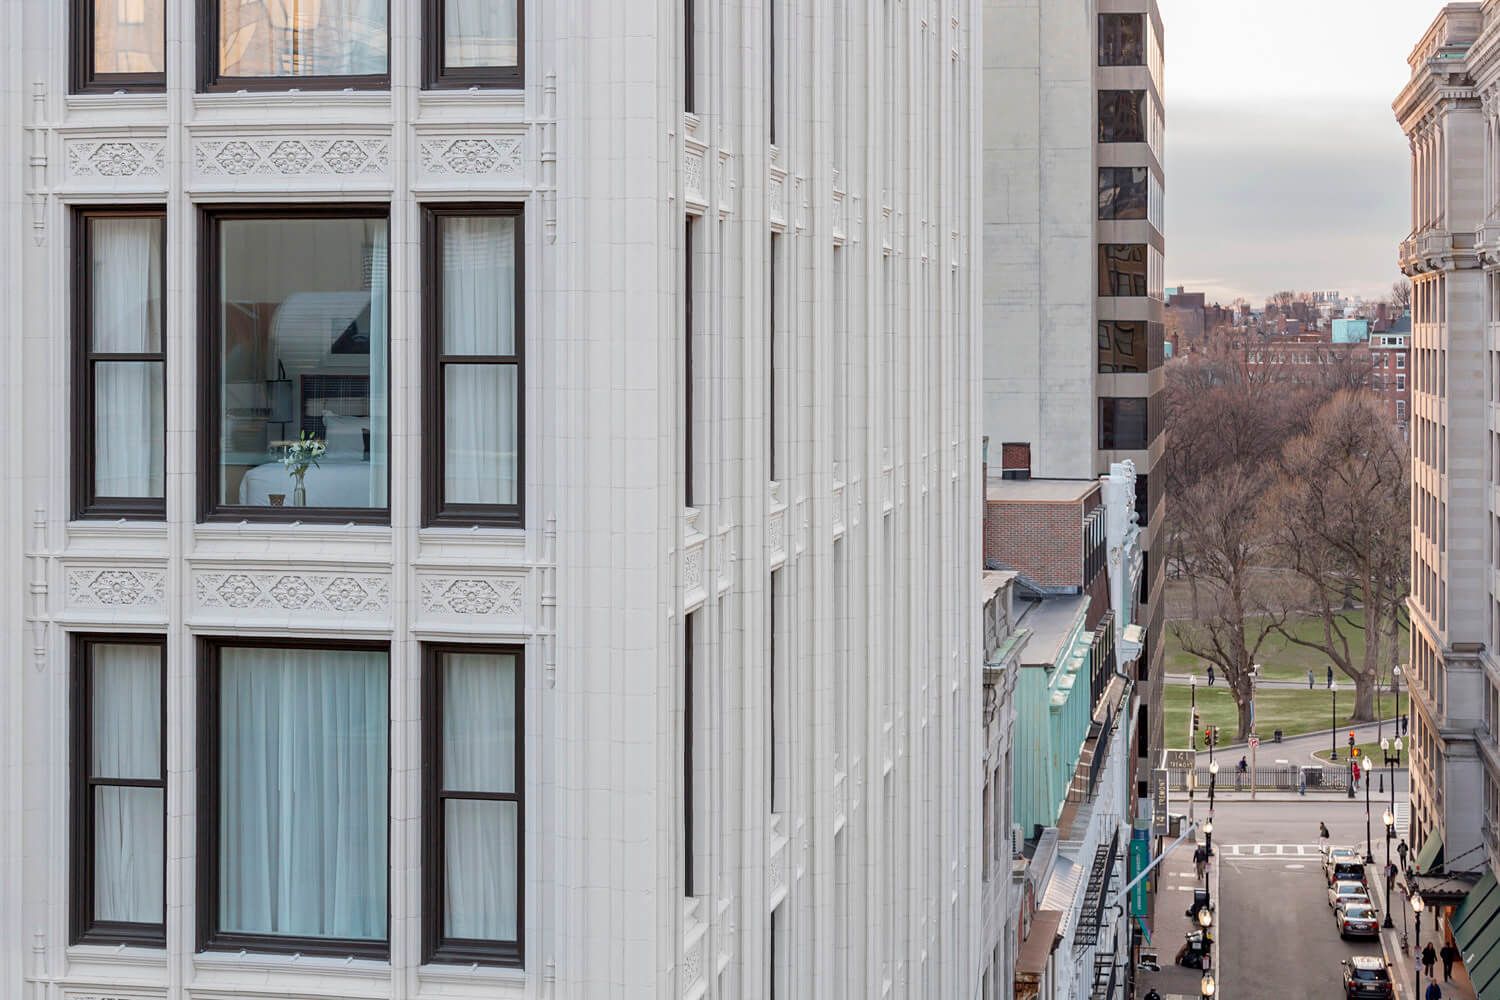 Detailed view of the Blake building facade, with views into two of the hotel rooms.